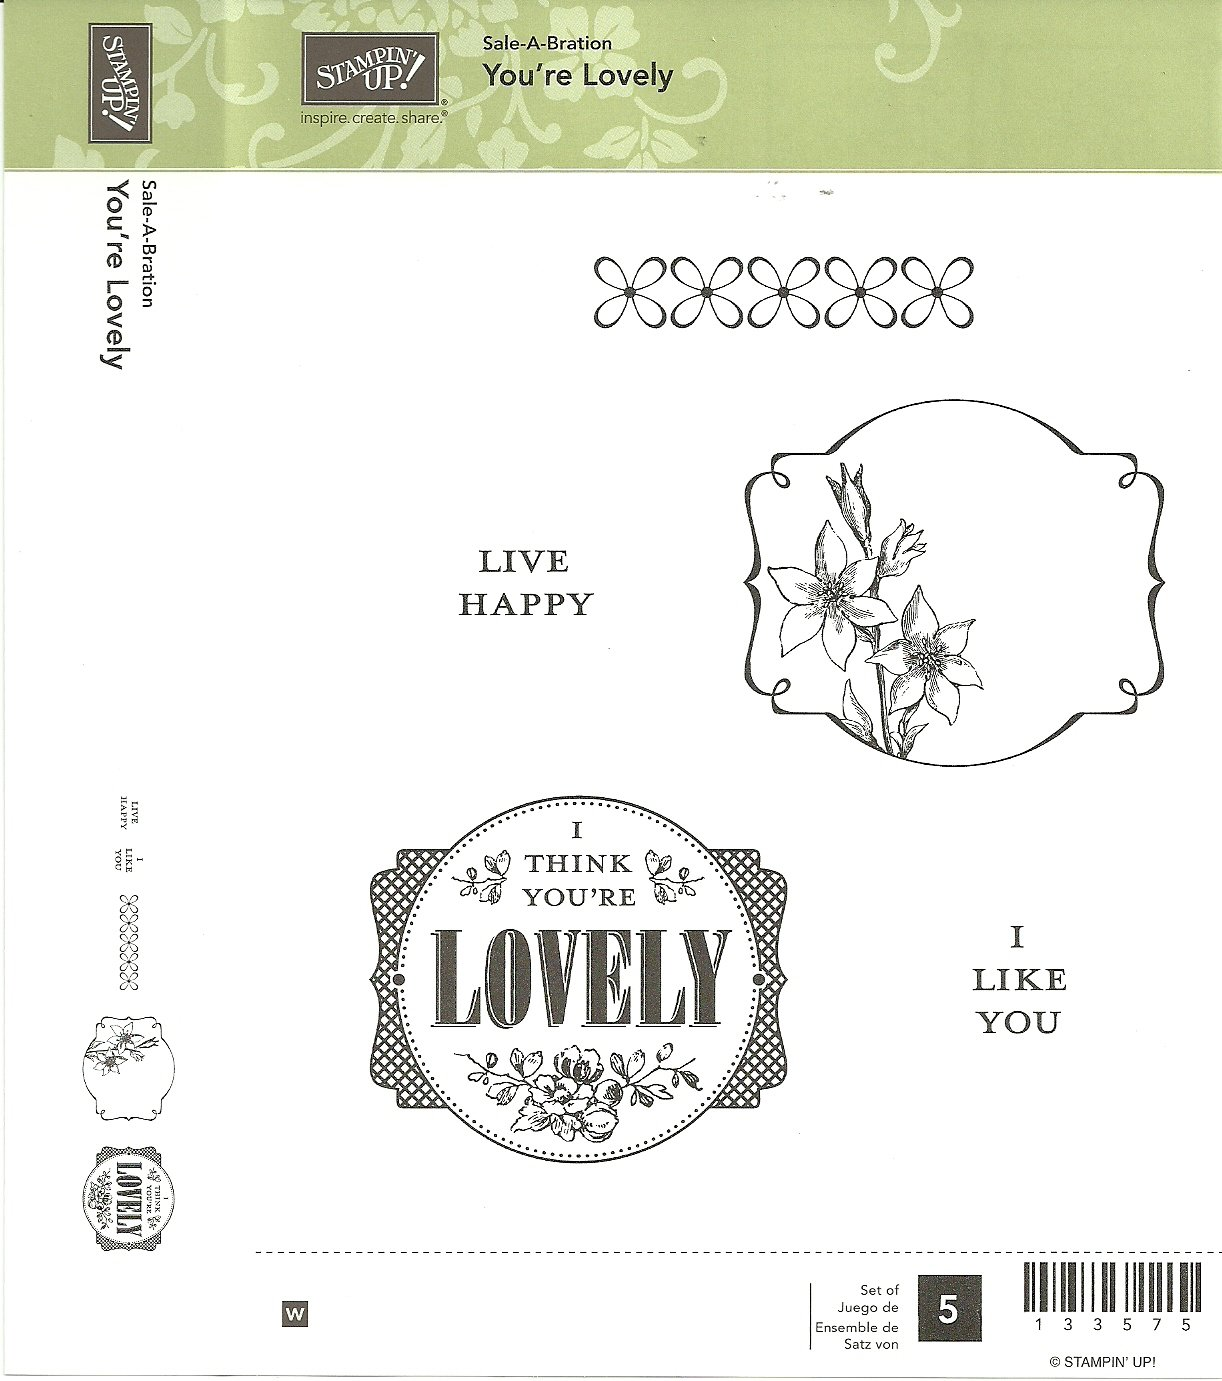 YOU'RE LOVELY - STAMPIN' UP! - Retired Set - NEW - WOOD BLOCKS - Sale-A-Bration